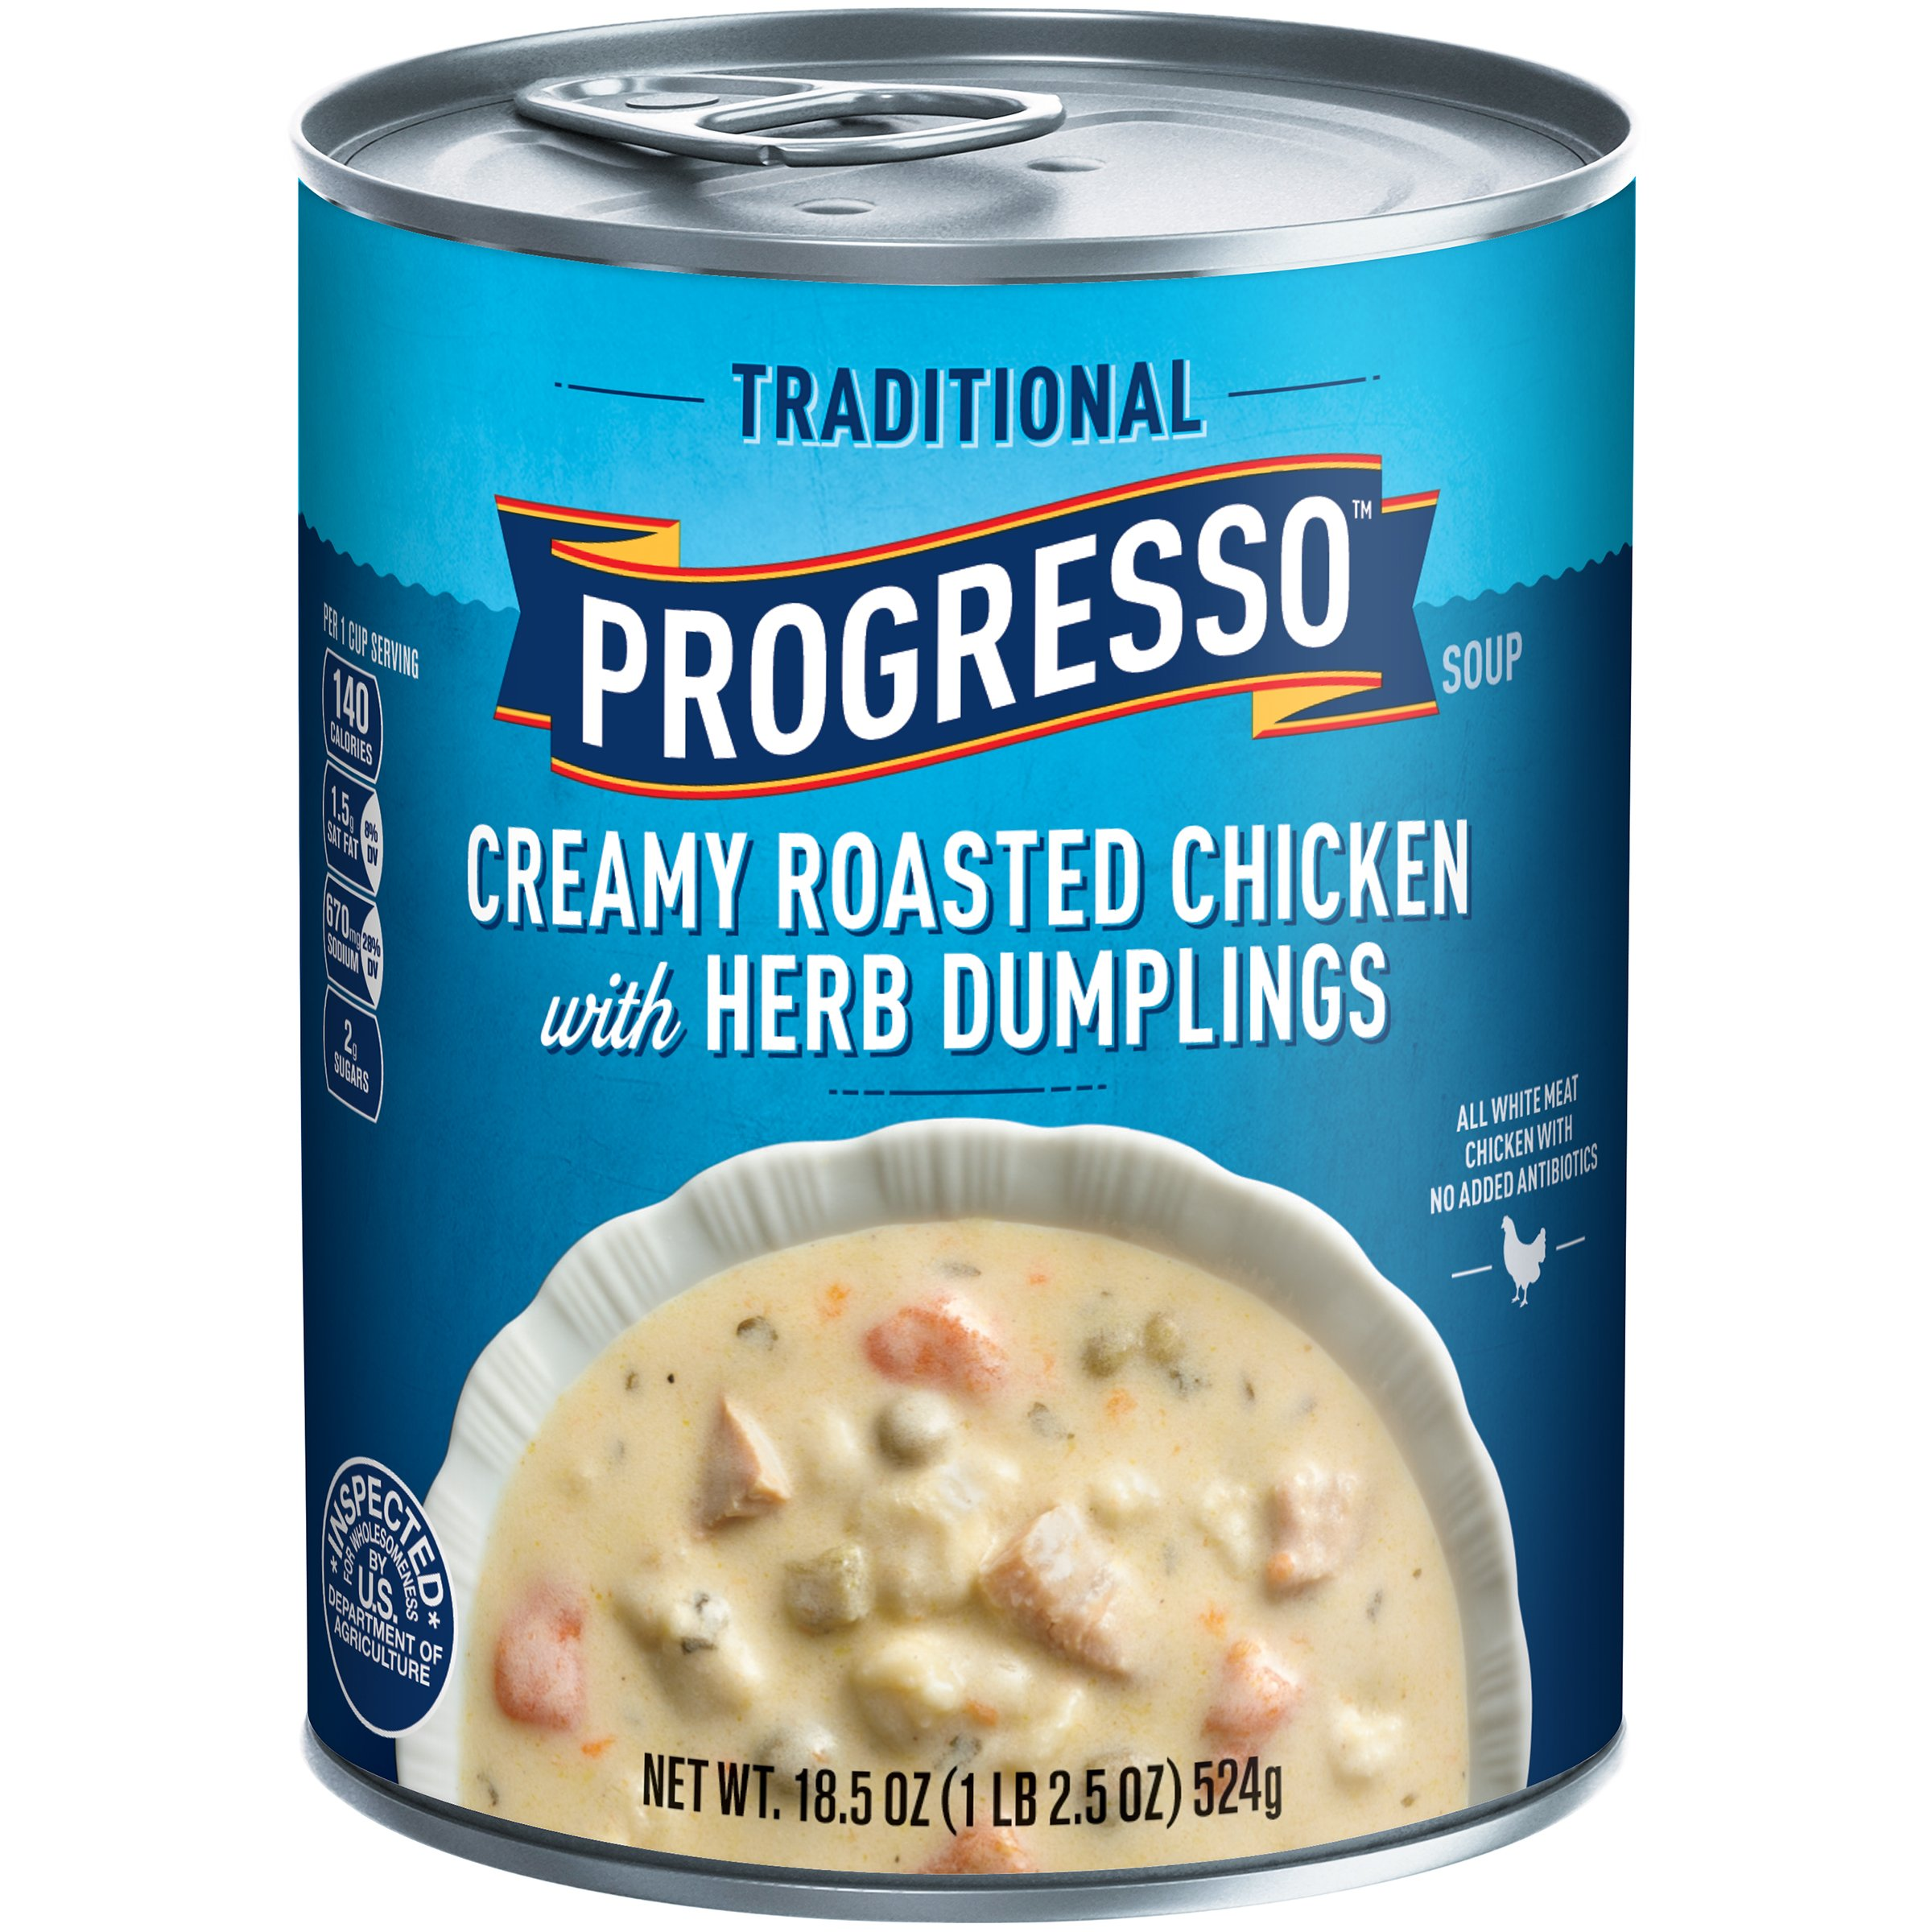 Progresso Soup, Traditional, Creamy Roasted Chicken with Herb Dumpling Soup, 18.5 oz Cans (Pack of 12)